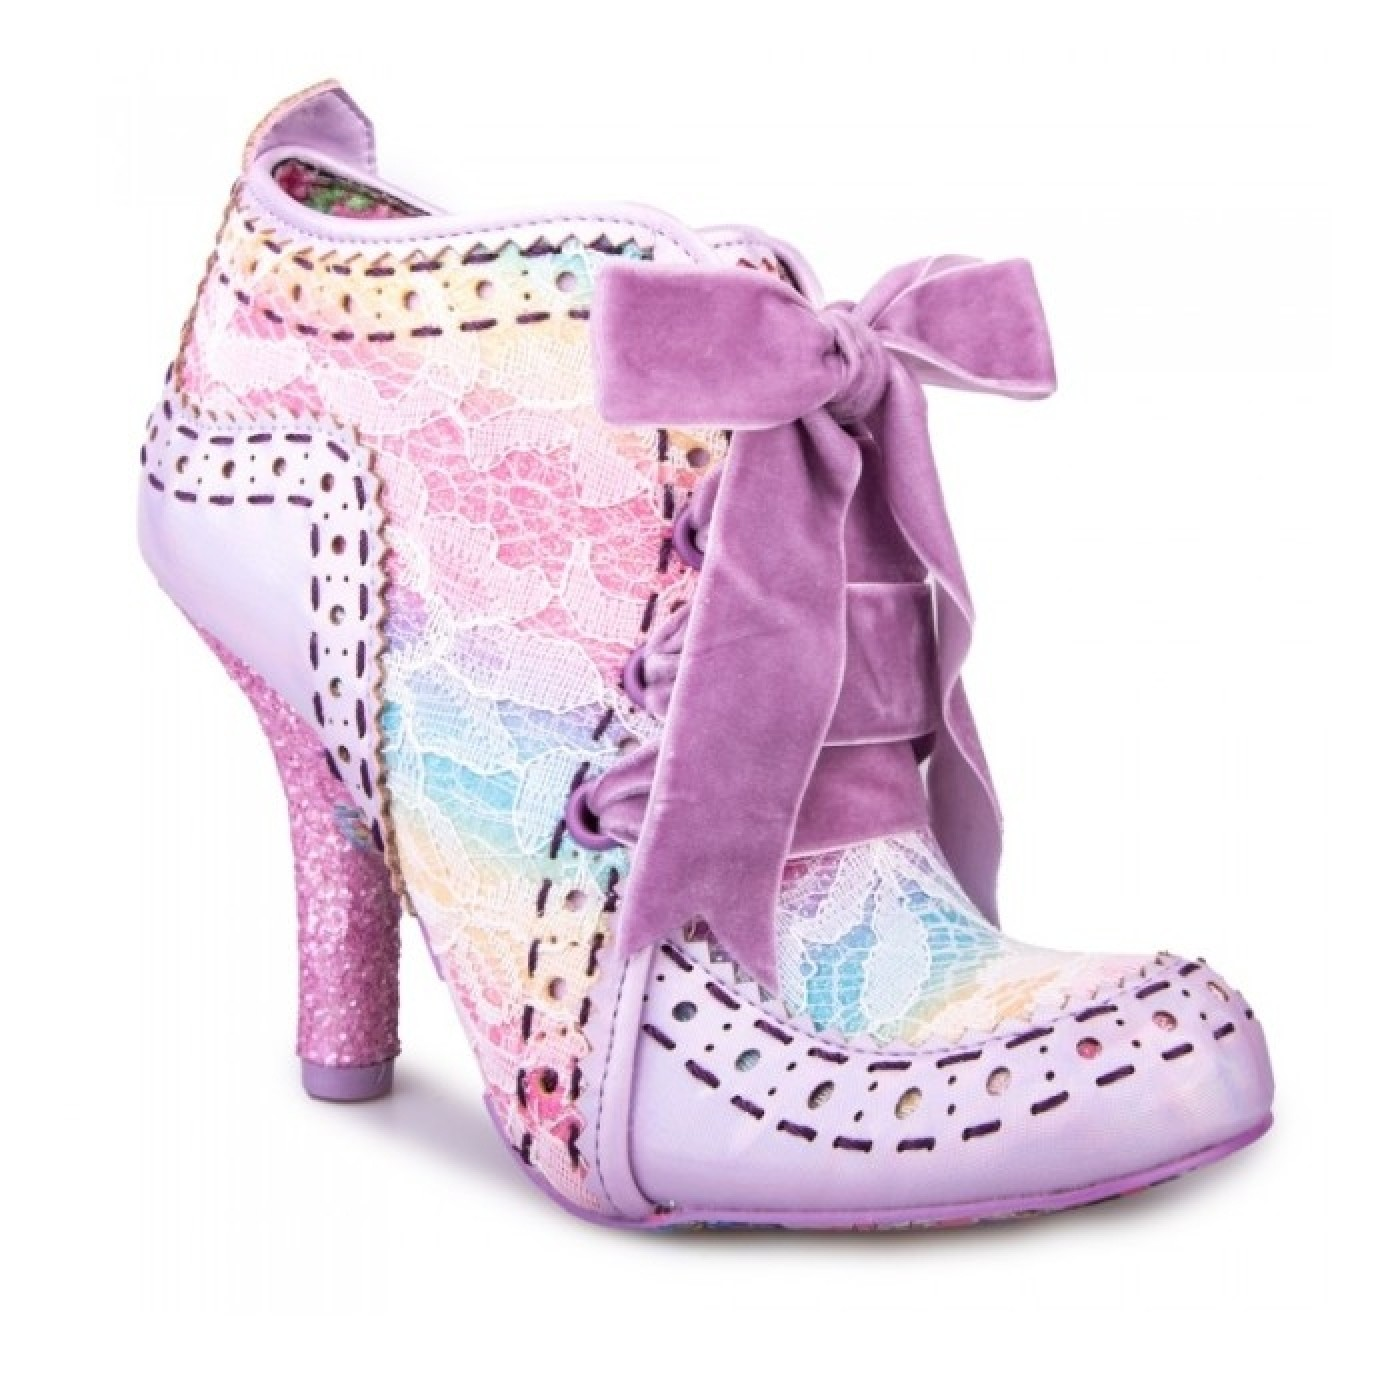 Abigails 3rd Party (Multi pink)